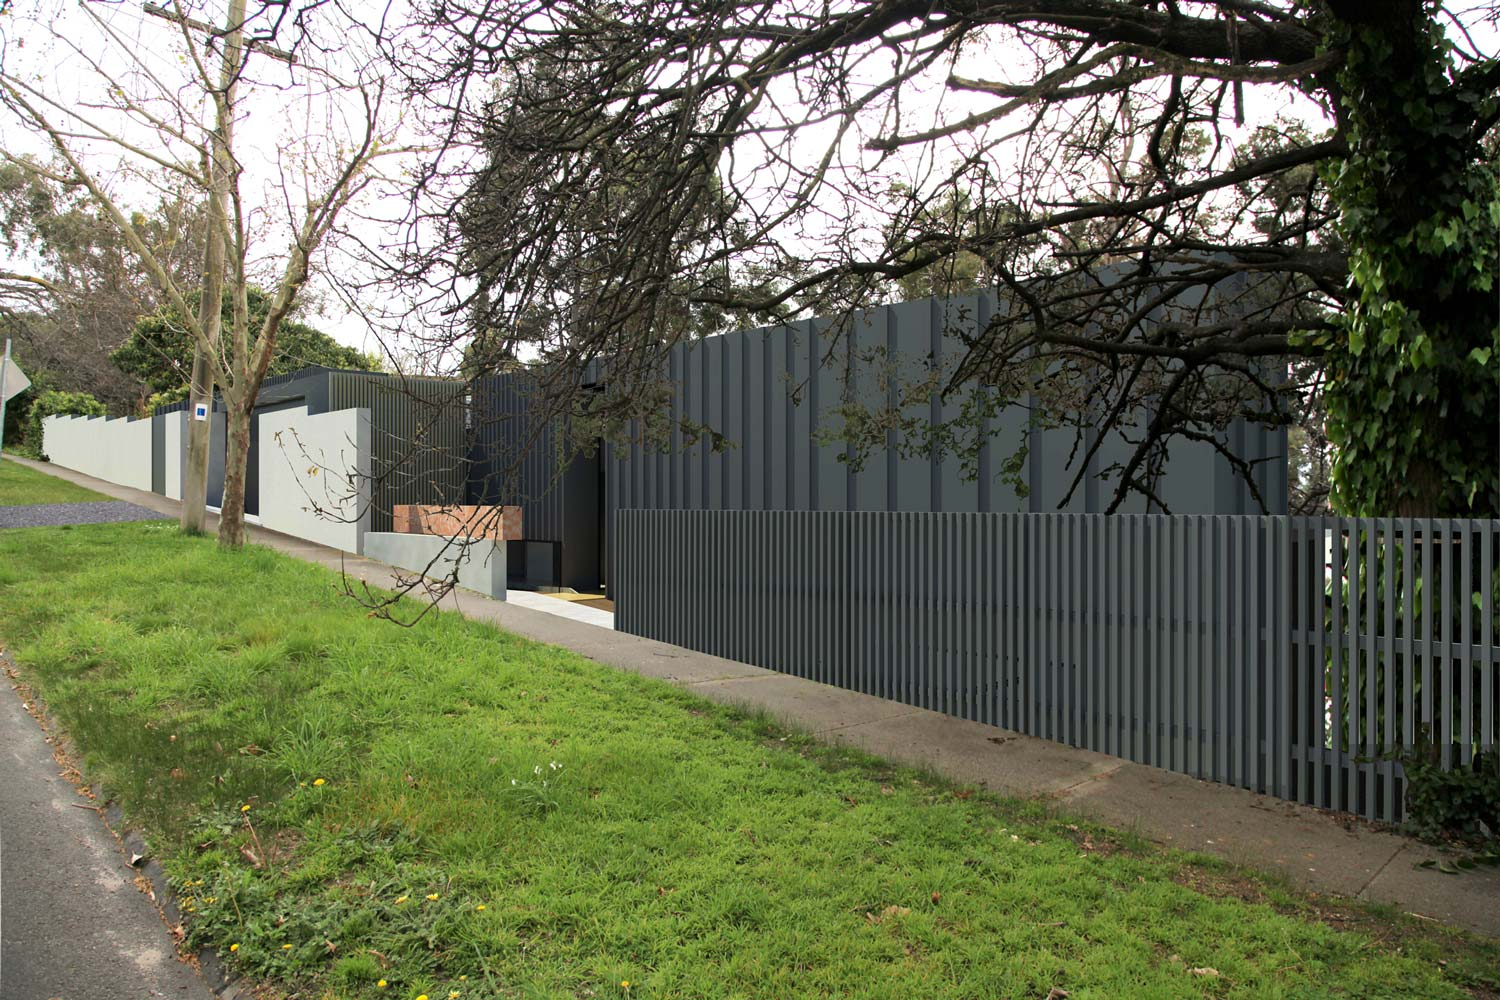 surrey-hills-contemporary-houses-by-warc-studio-02.jpg